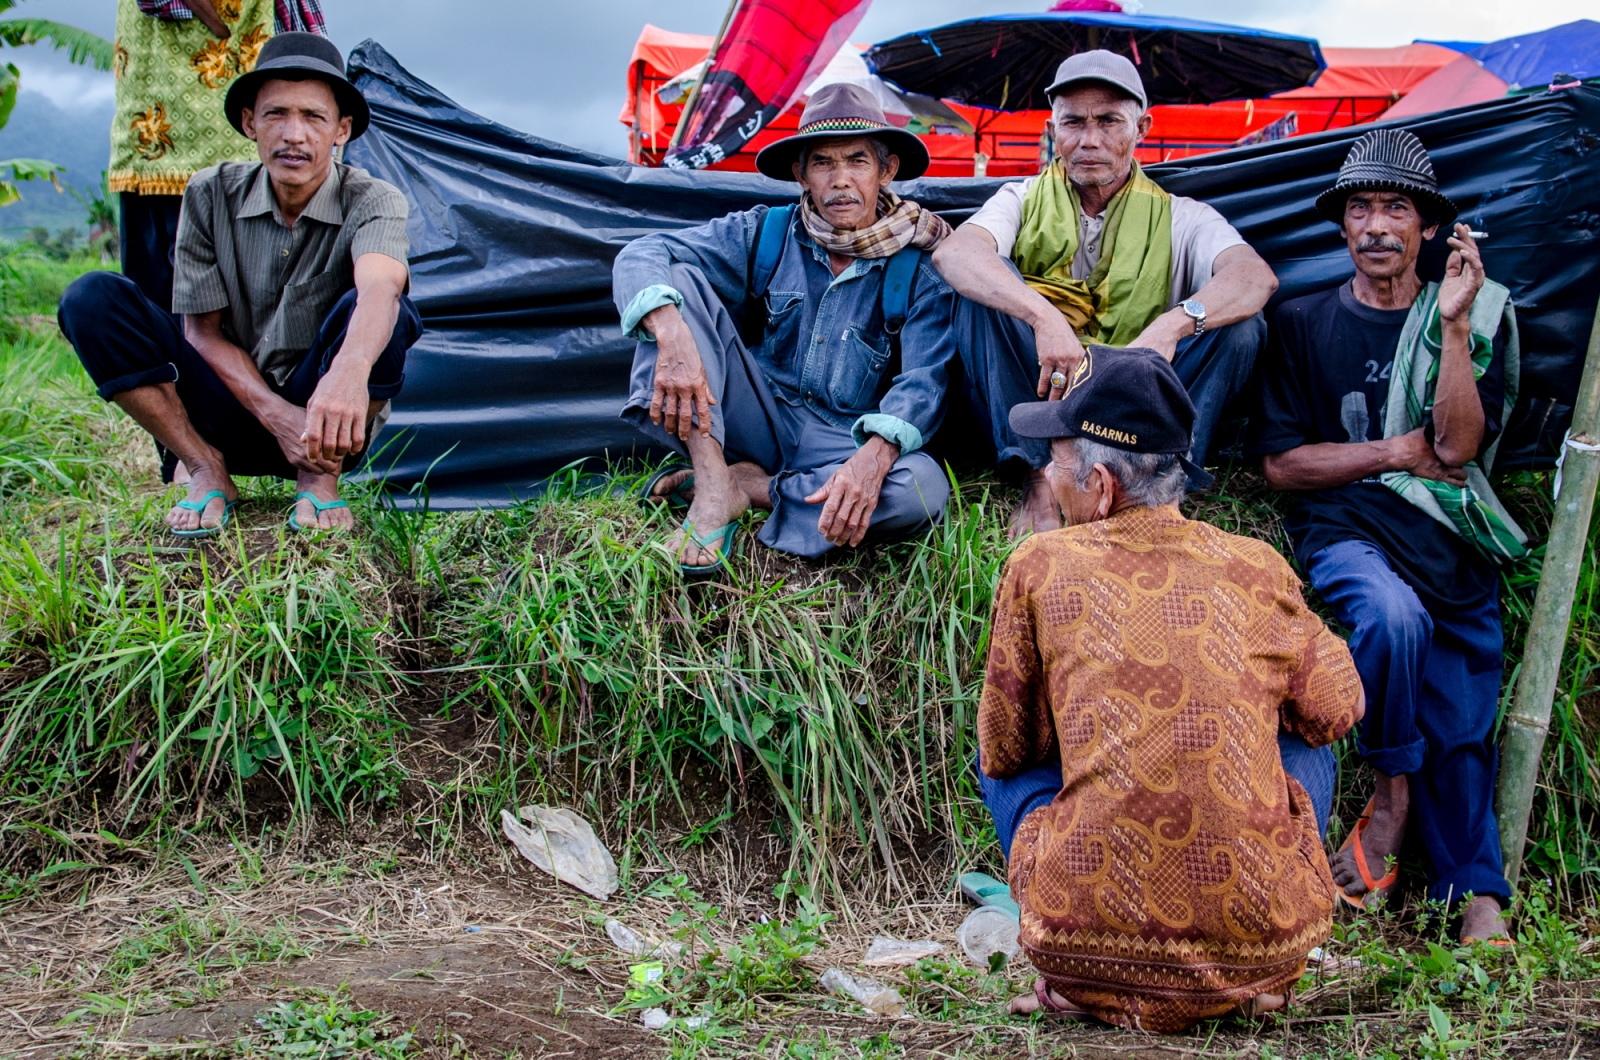 Indonesians are highly social and Pacu Jawi allows not only for fascinating sport, but also community time. Here, a group of men have gathered, awaiting the start of the races. There is much conversation, whether scoping out the contenders, or just catching up with friends. Prepared for a long day out in the sun, the men are wearing unique headwear.